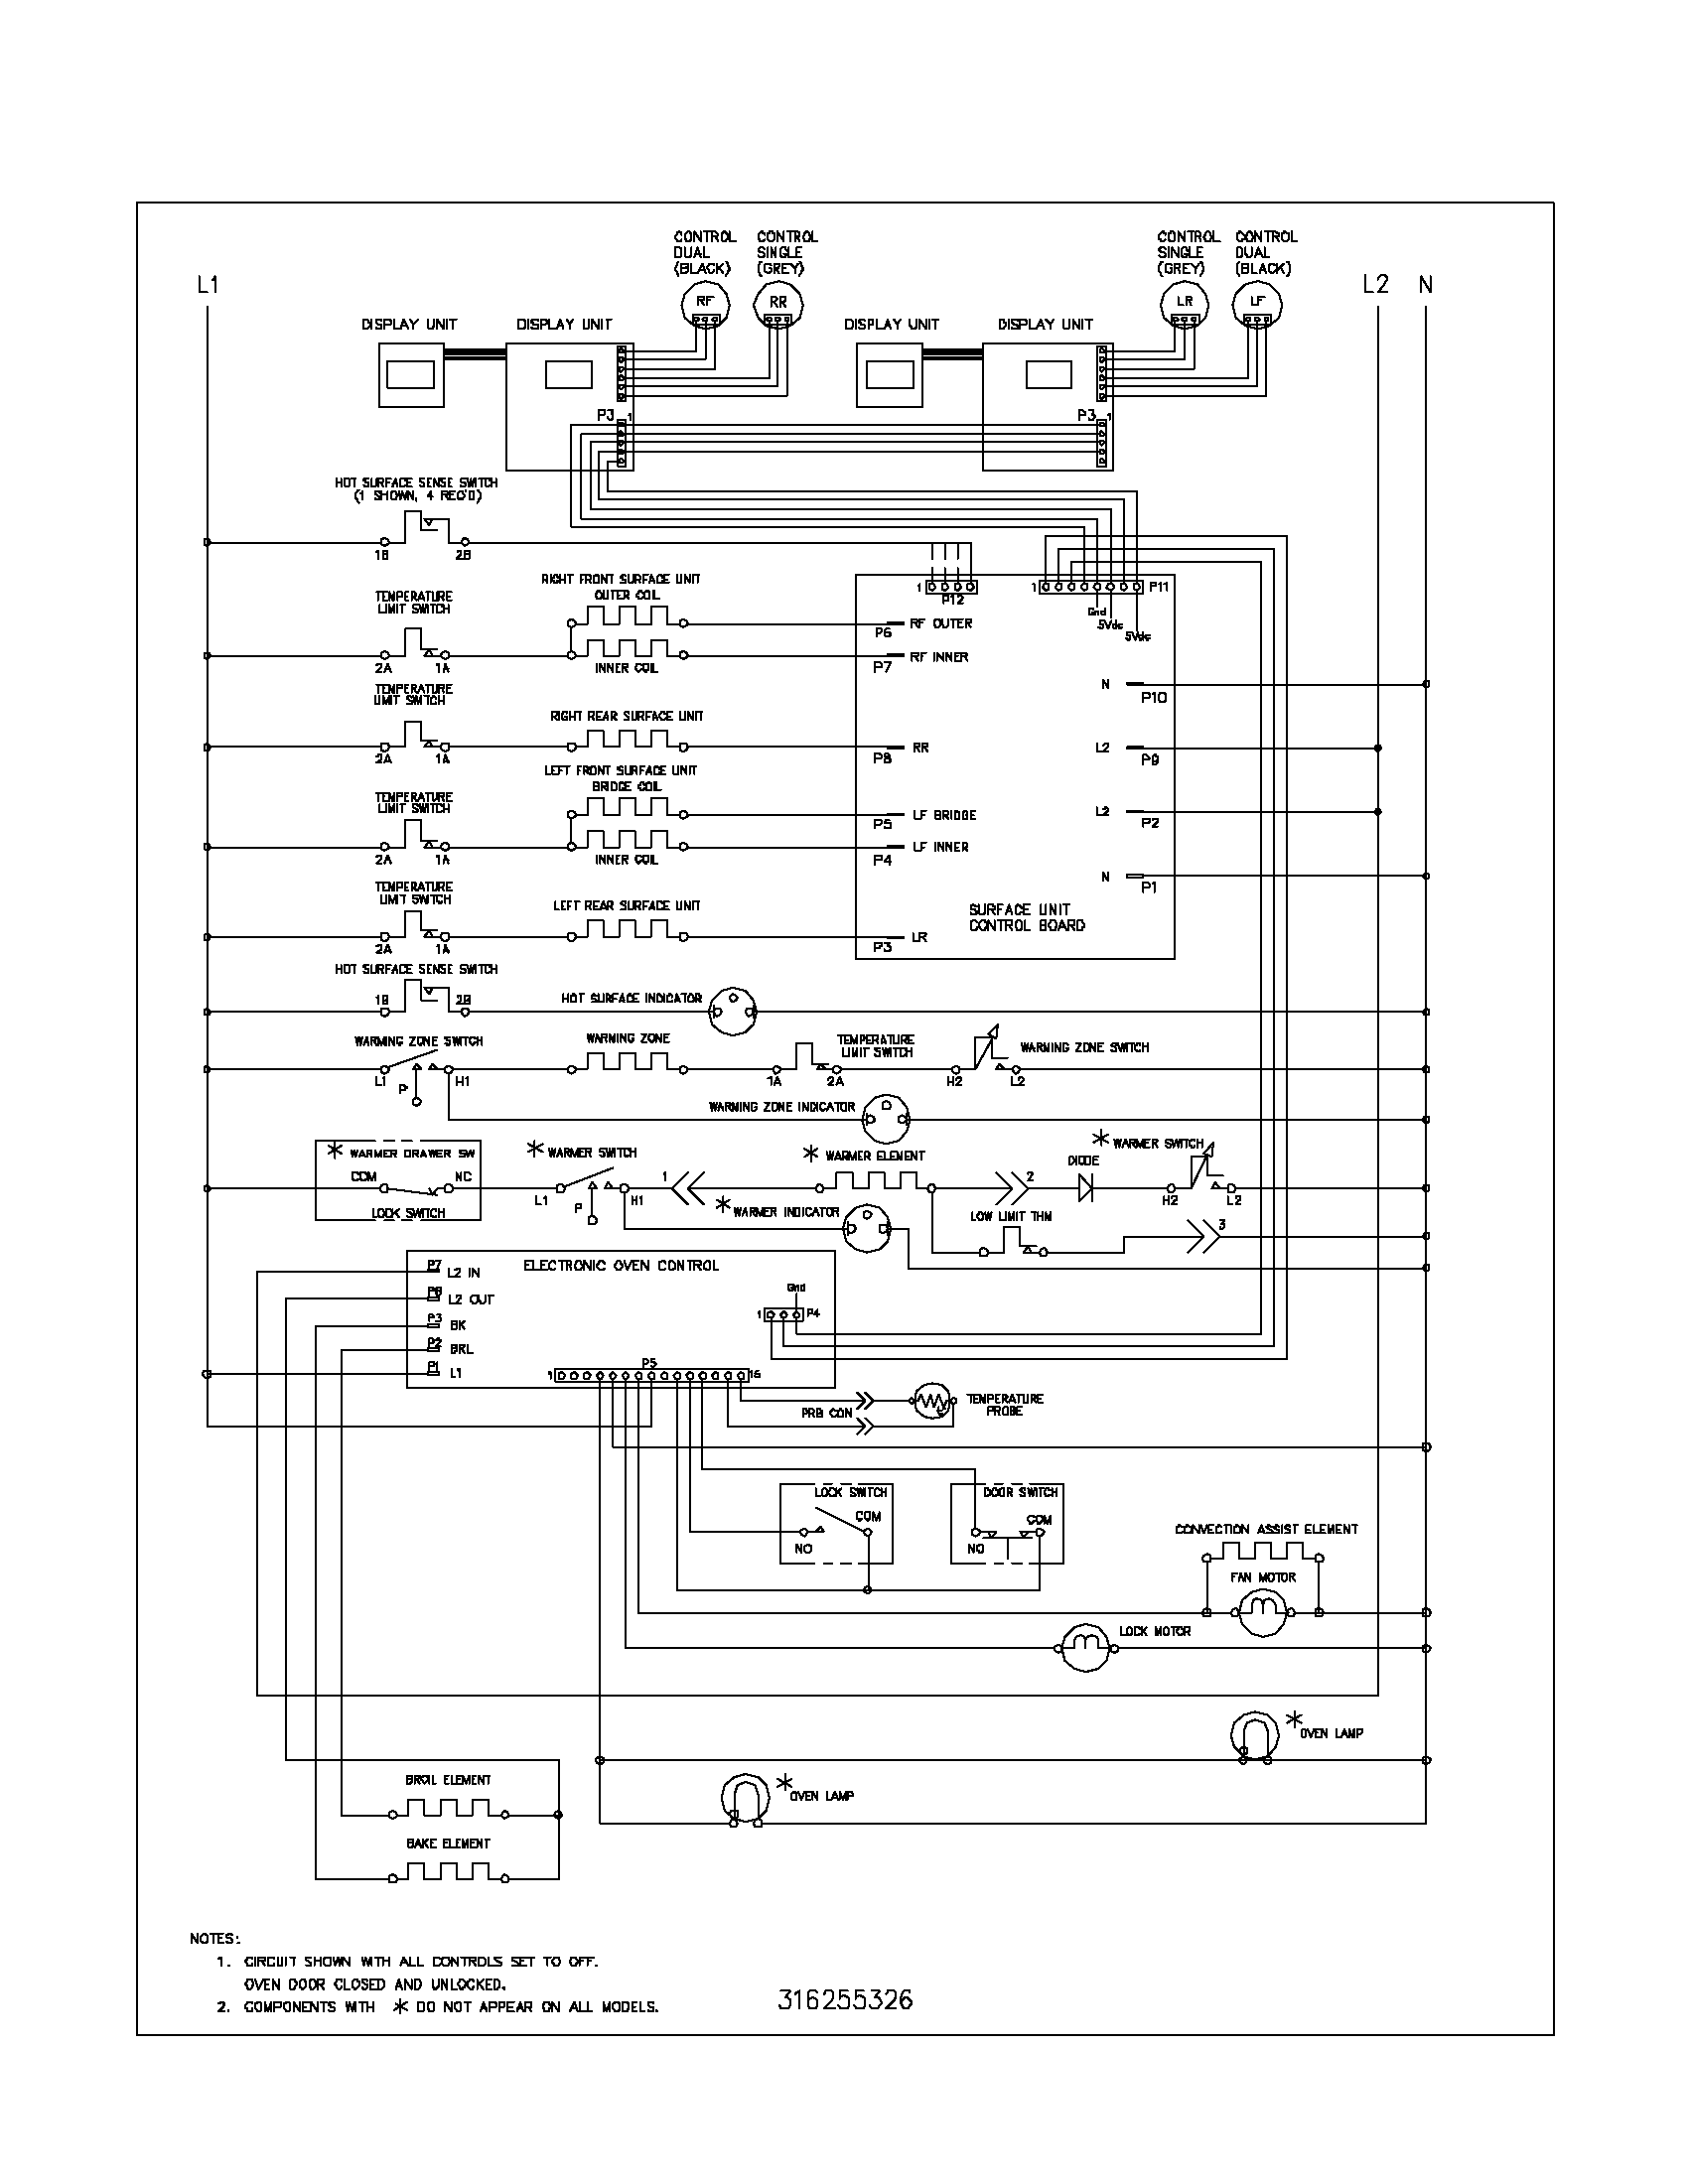 Singer Furnace Wiring Diagram 29 Images Air Conditioner To Schematic Parts For Lennox Gas The Trane Conditioning